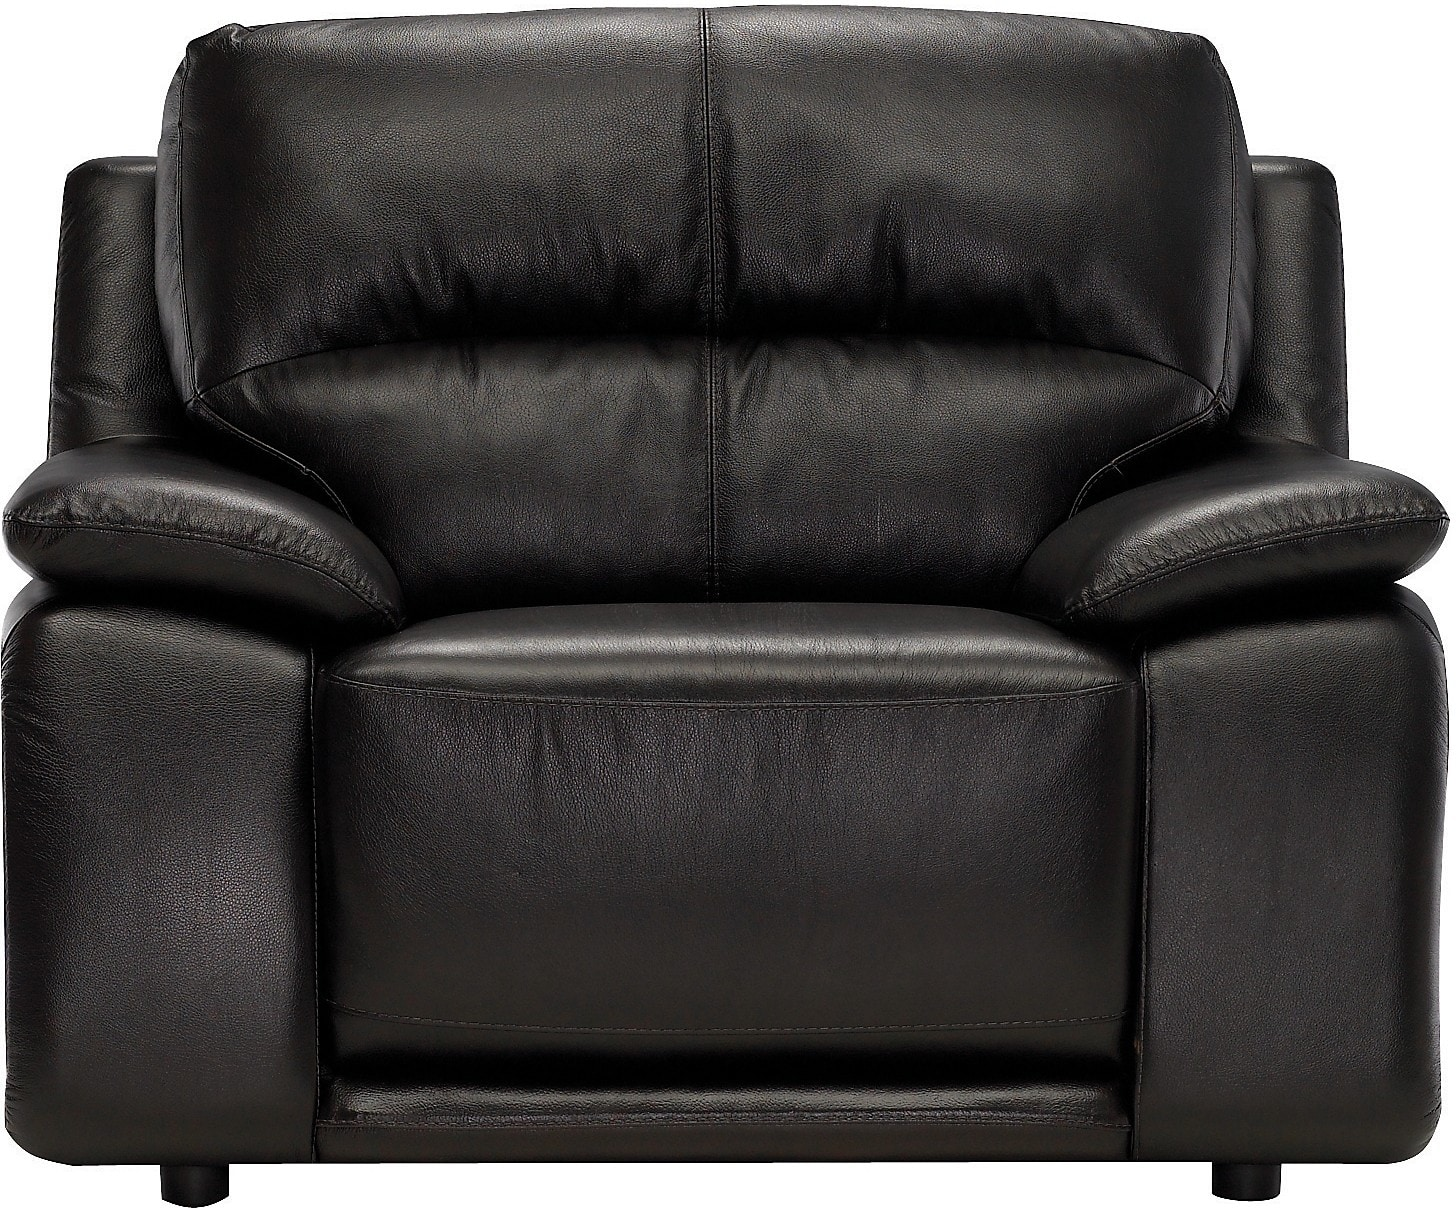 Living Room Furniture - Chateau d'Ax 100% Genuine Leather Chair- Dark Chocolate